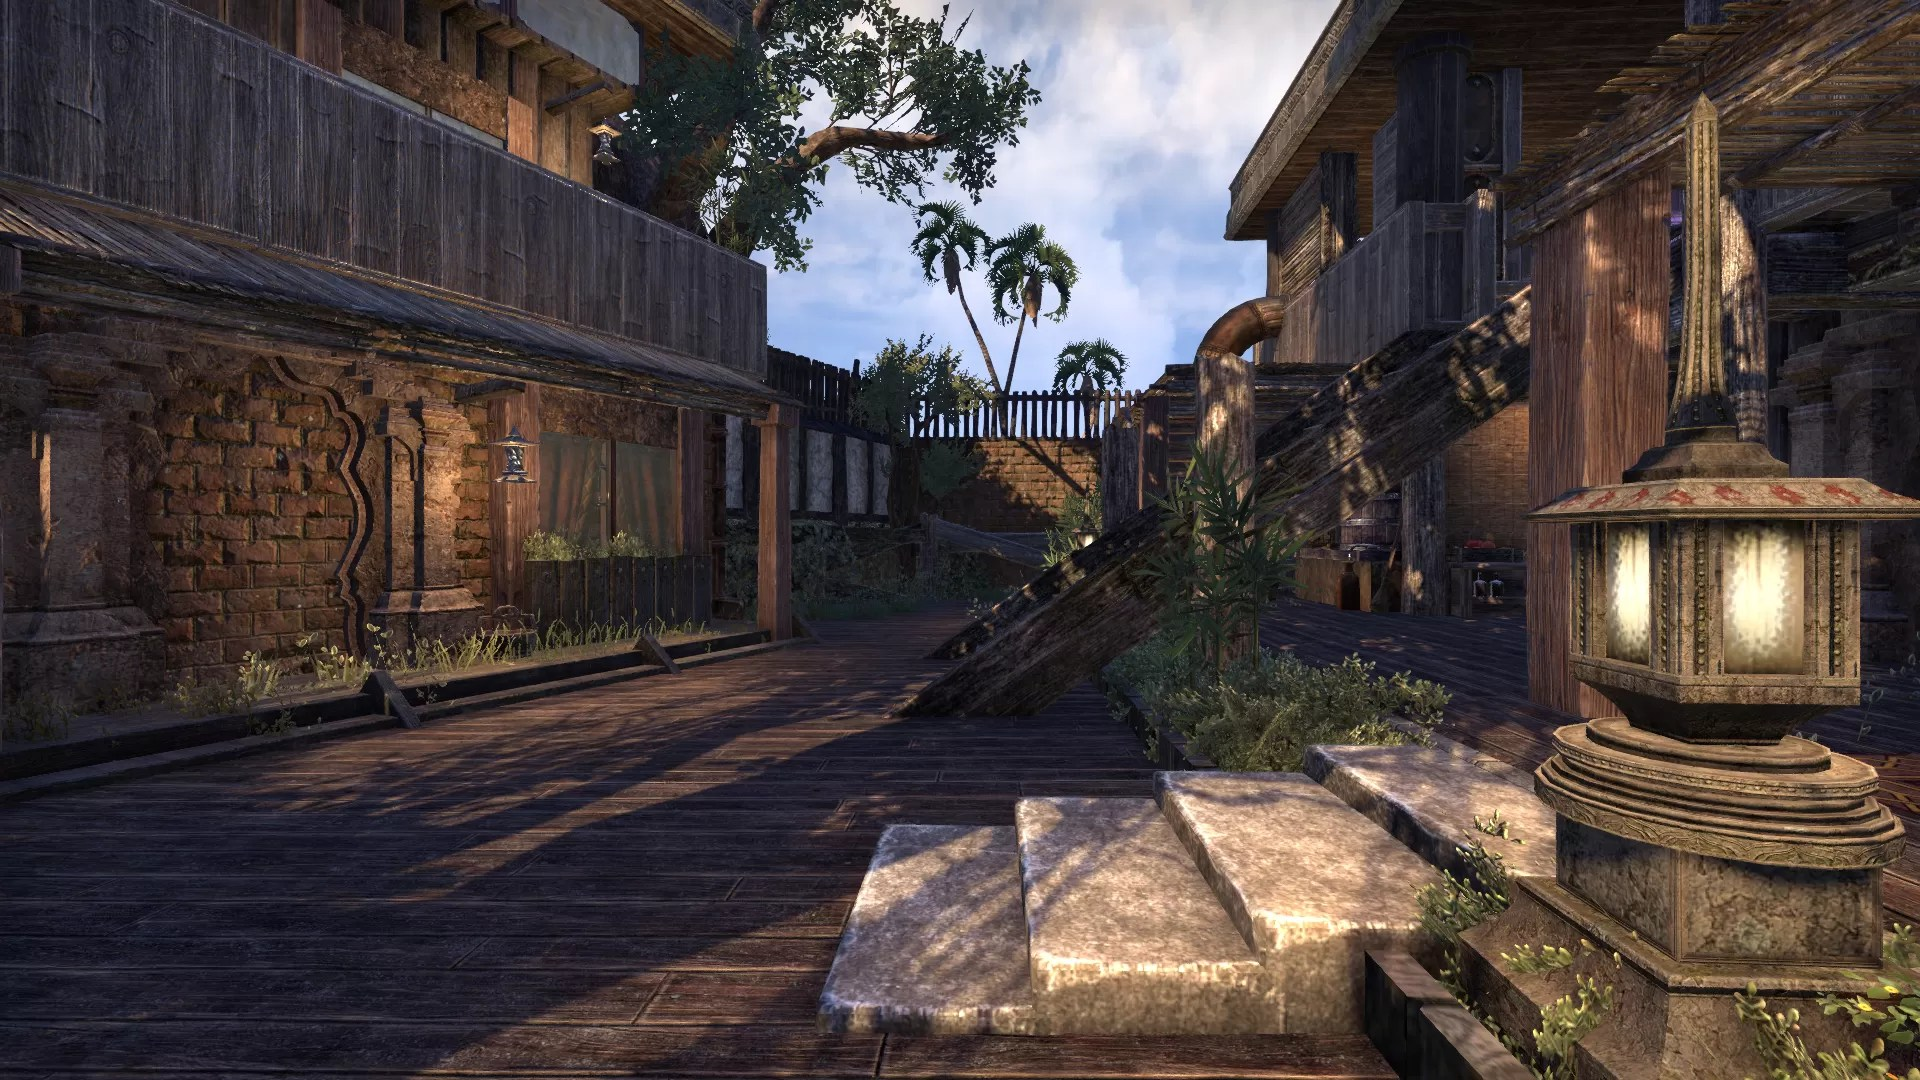 SUNNY WINERY IN ELSWEYR [EU]